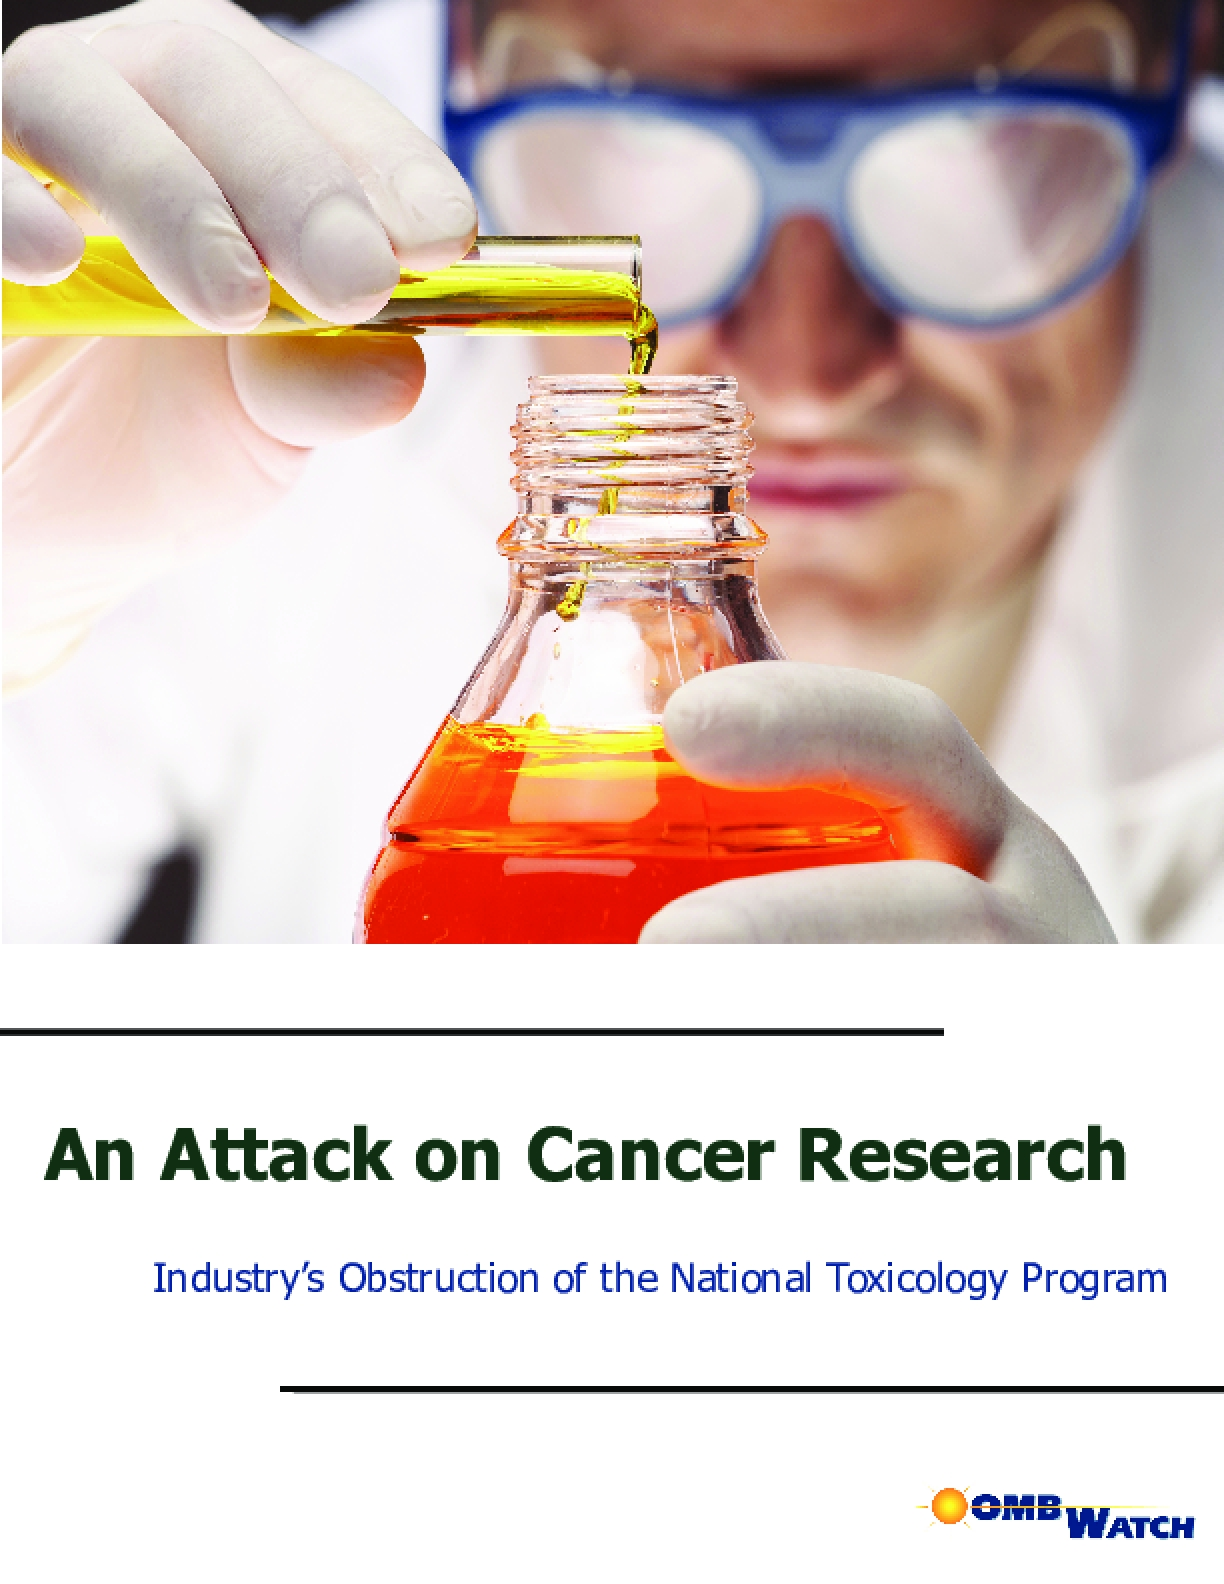 An Attack on Cancer Research: Industry's Obstruction of the National Toxicology Program